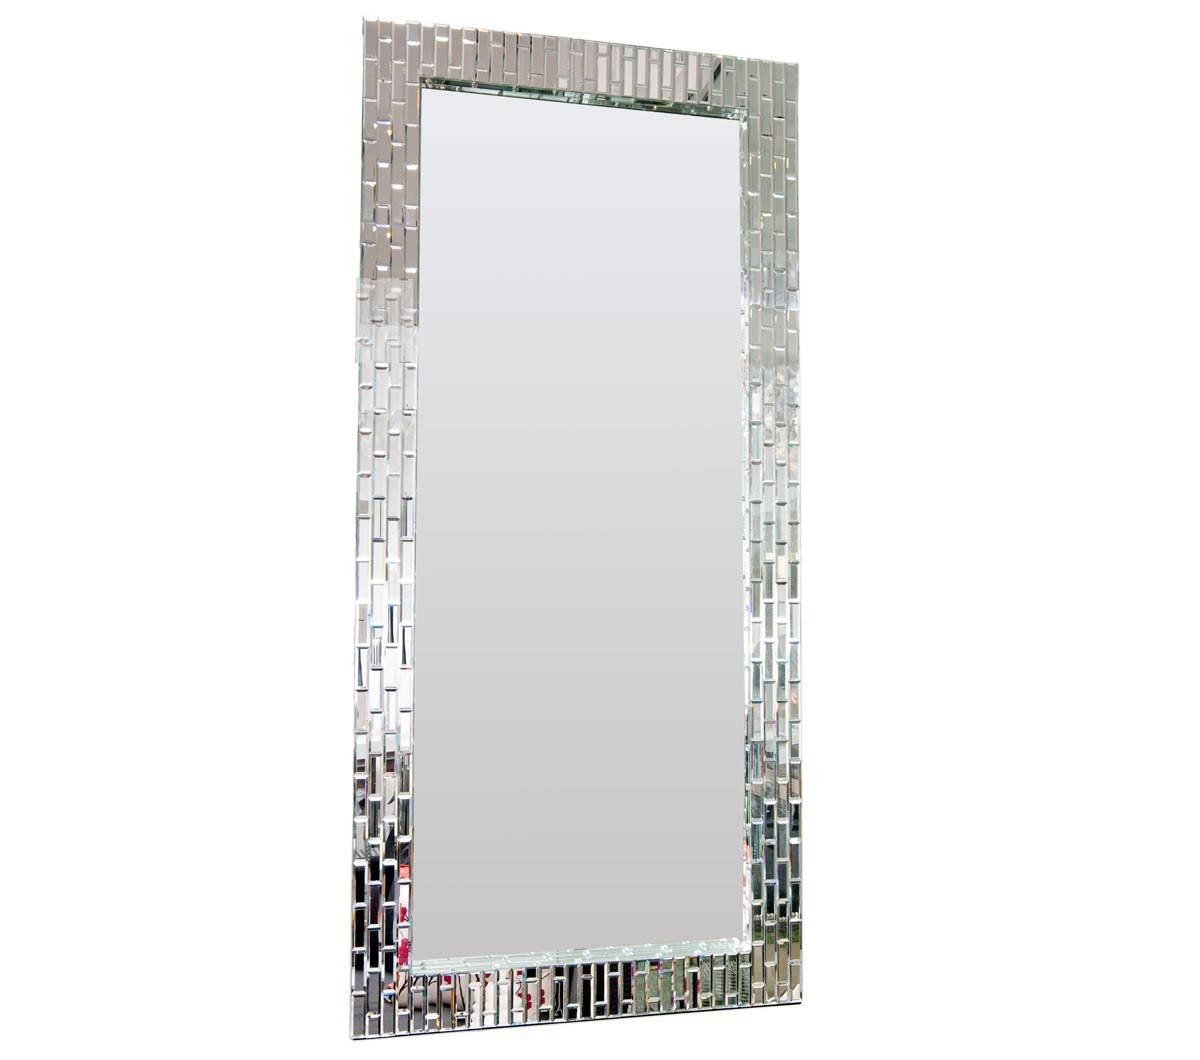 Glitz Mirror pertaining to Glitzy Mirrors (Image 21 of 25)